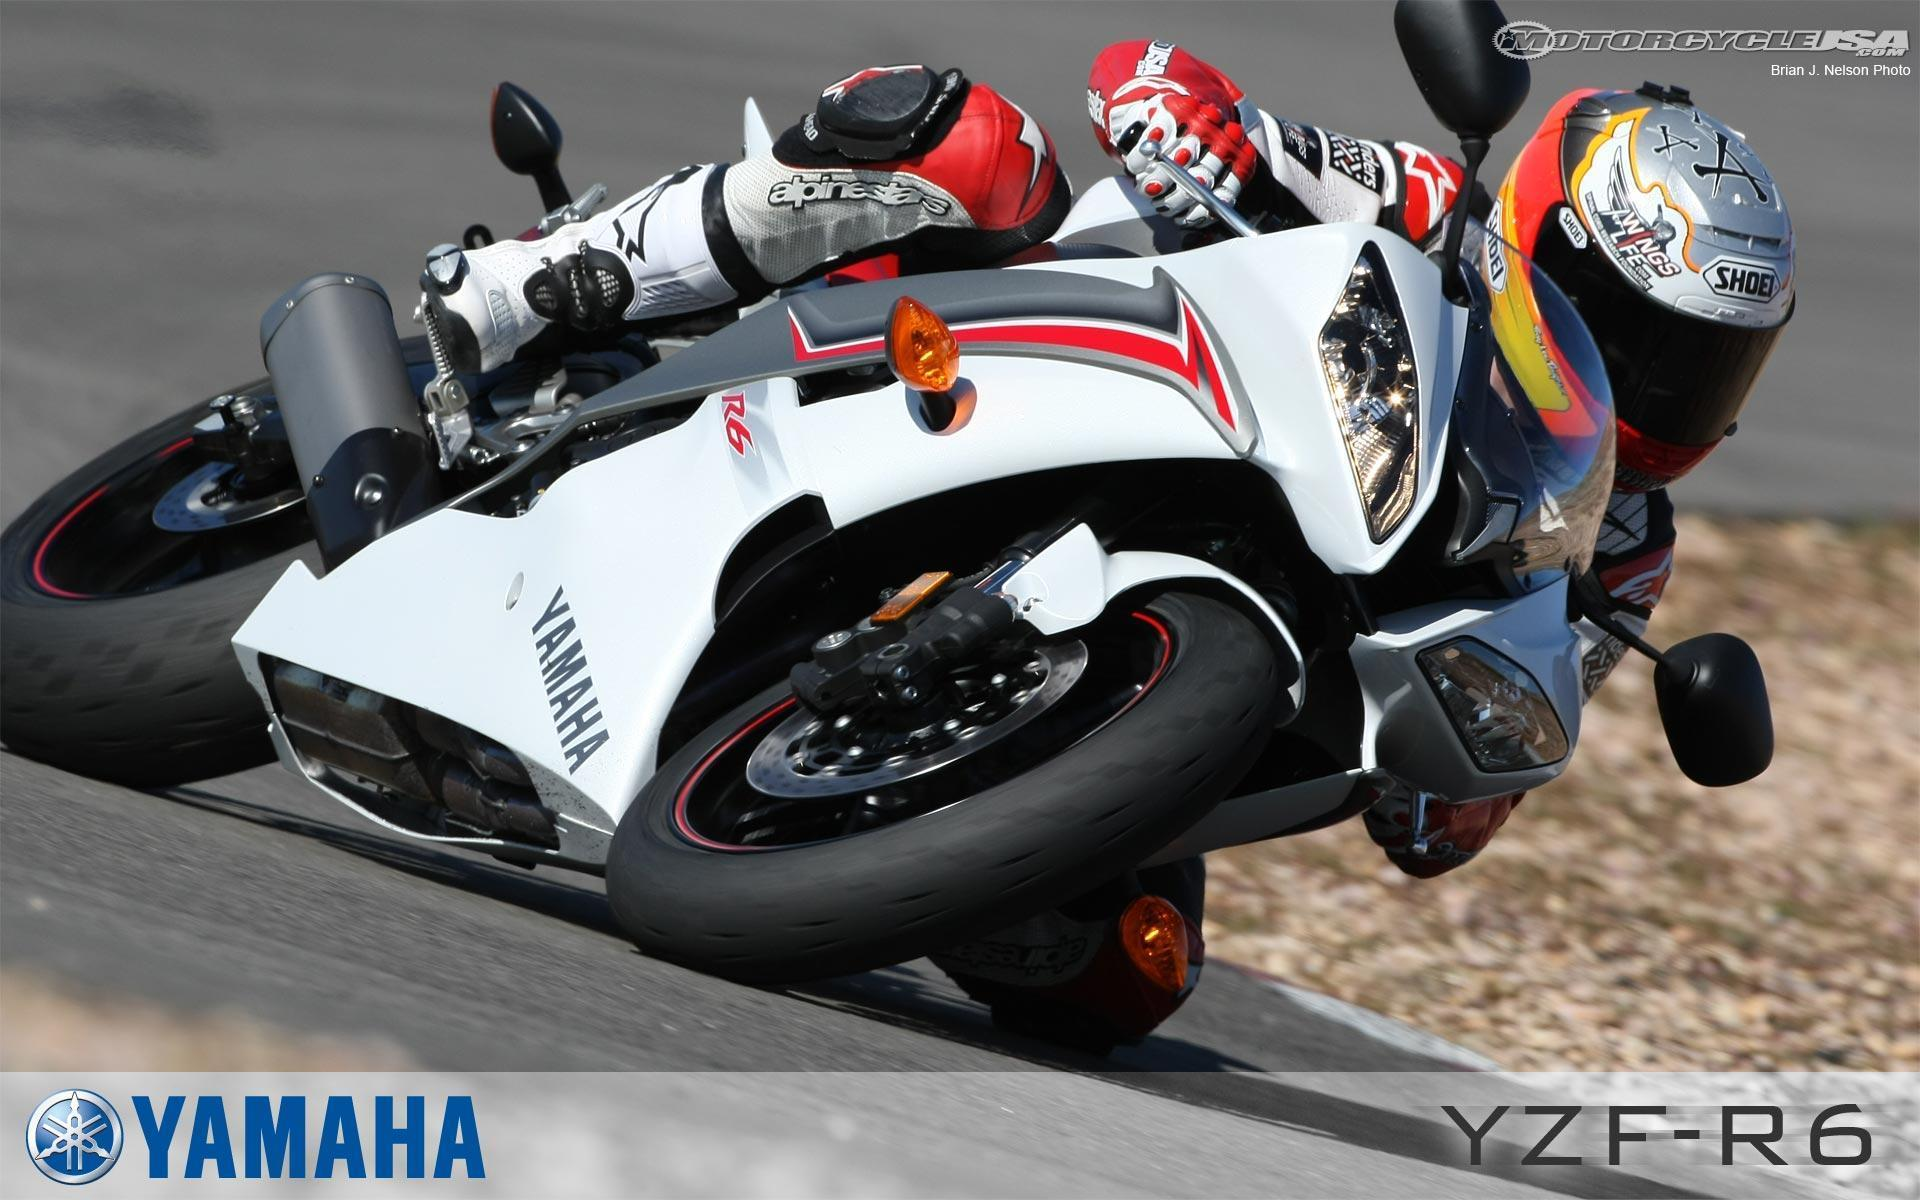 2009 Yamaha YZF-R6 Comparison - Motorcycle USA